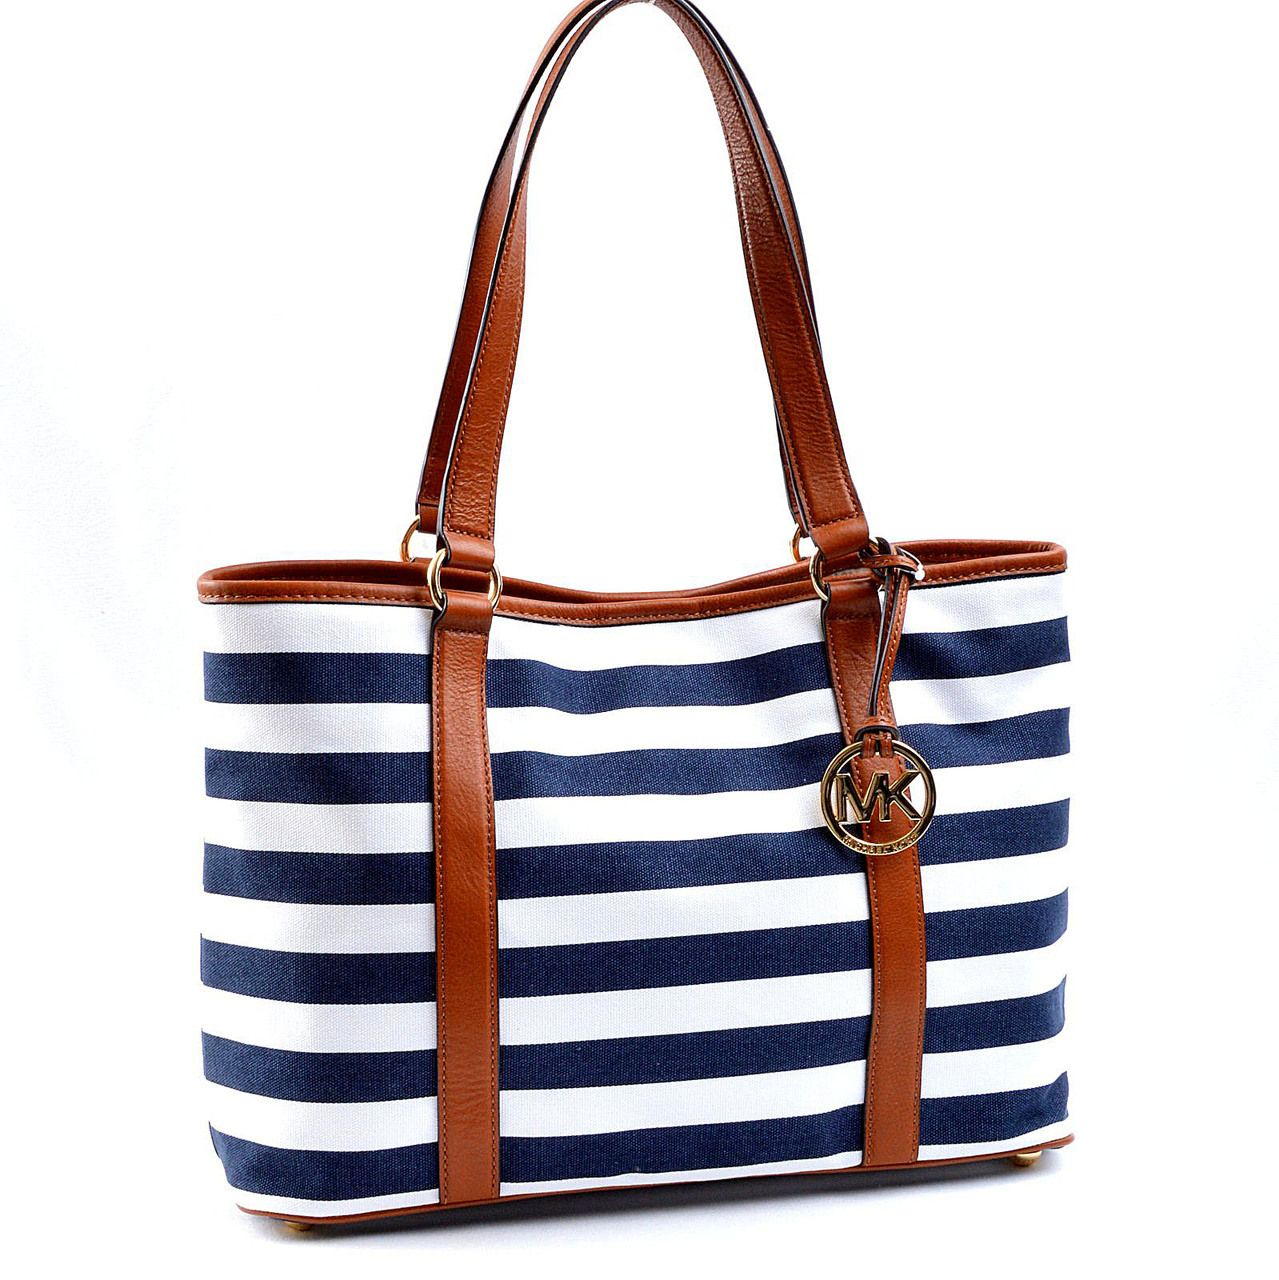 Designer Handbags Rescue - Michael Kors Summer Stripe Large E/W ...